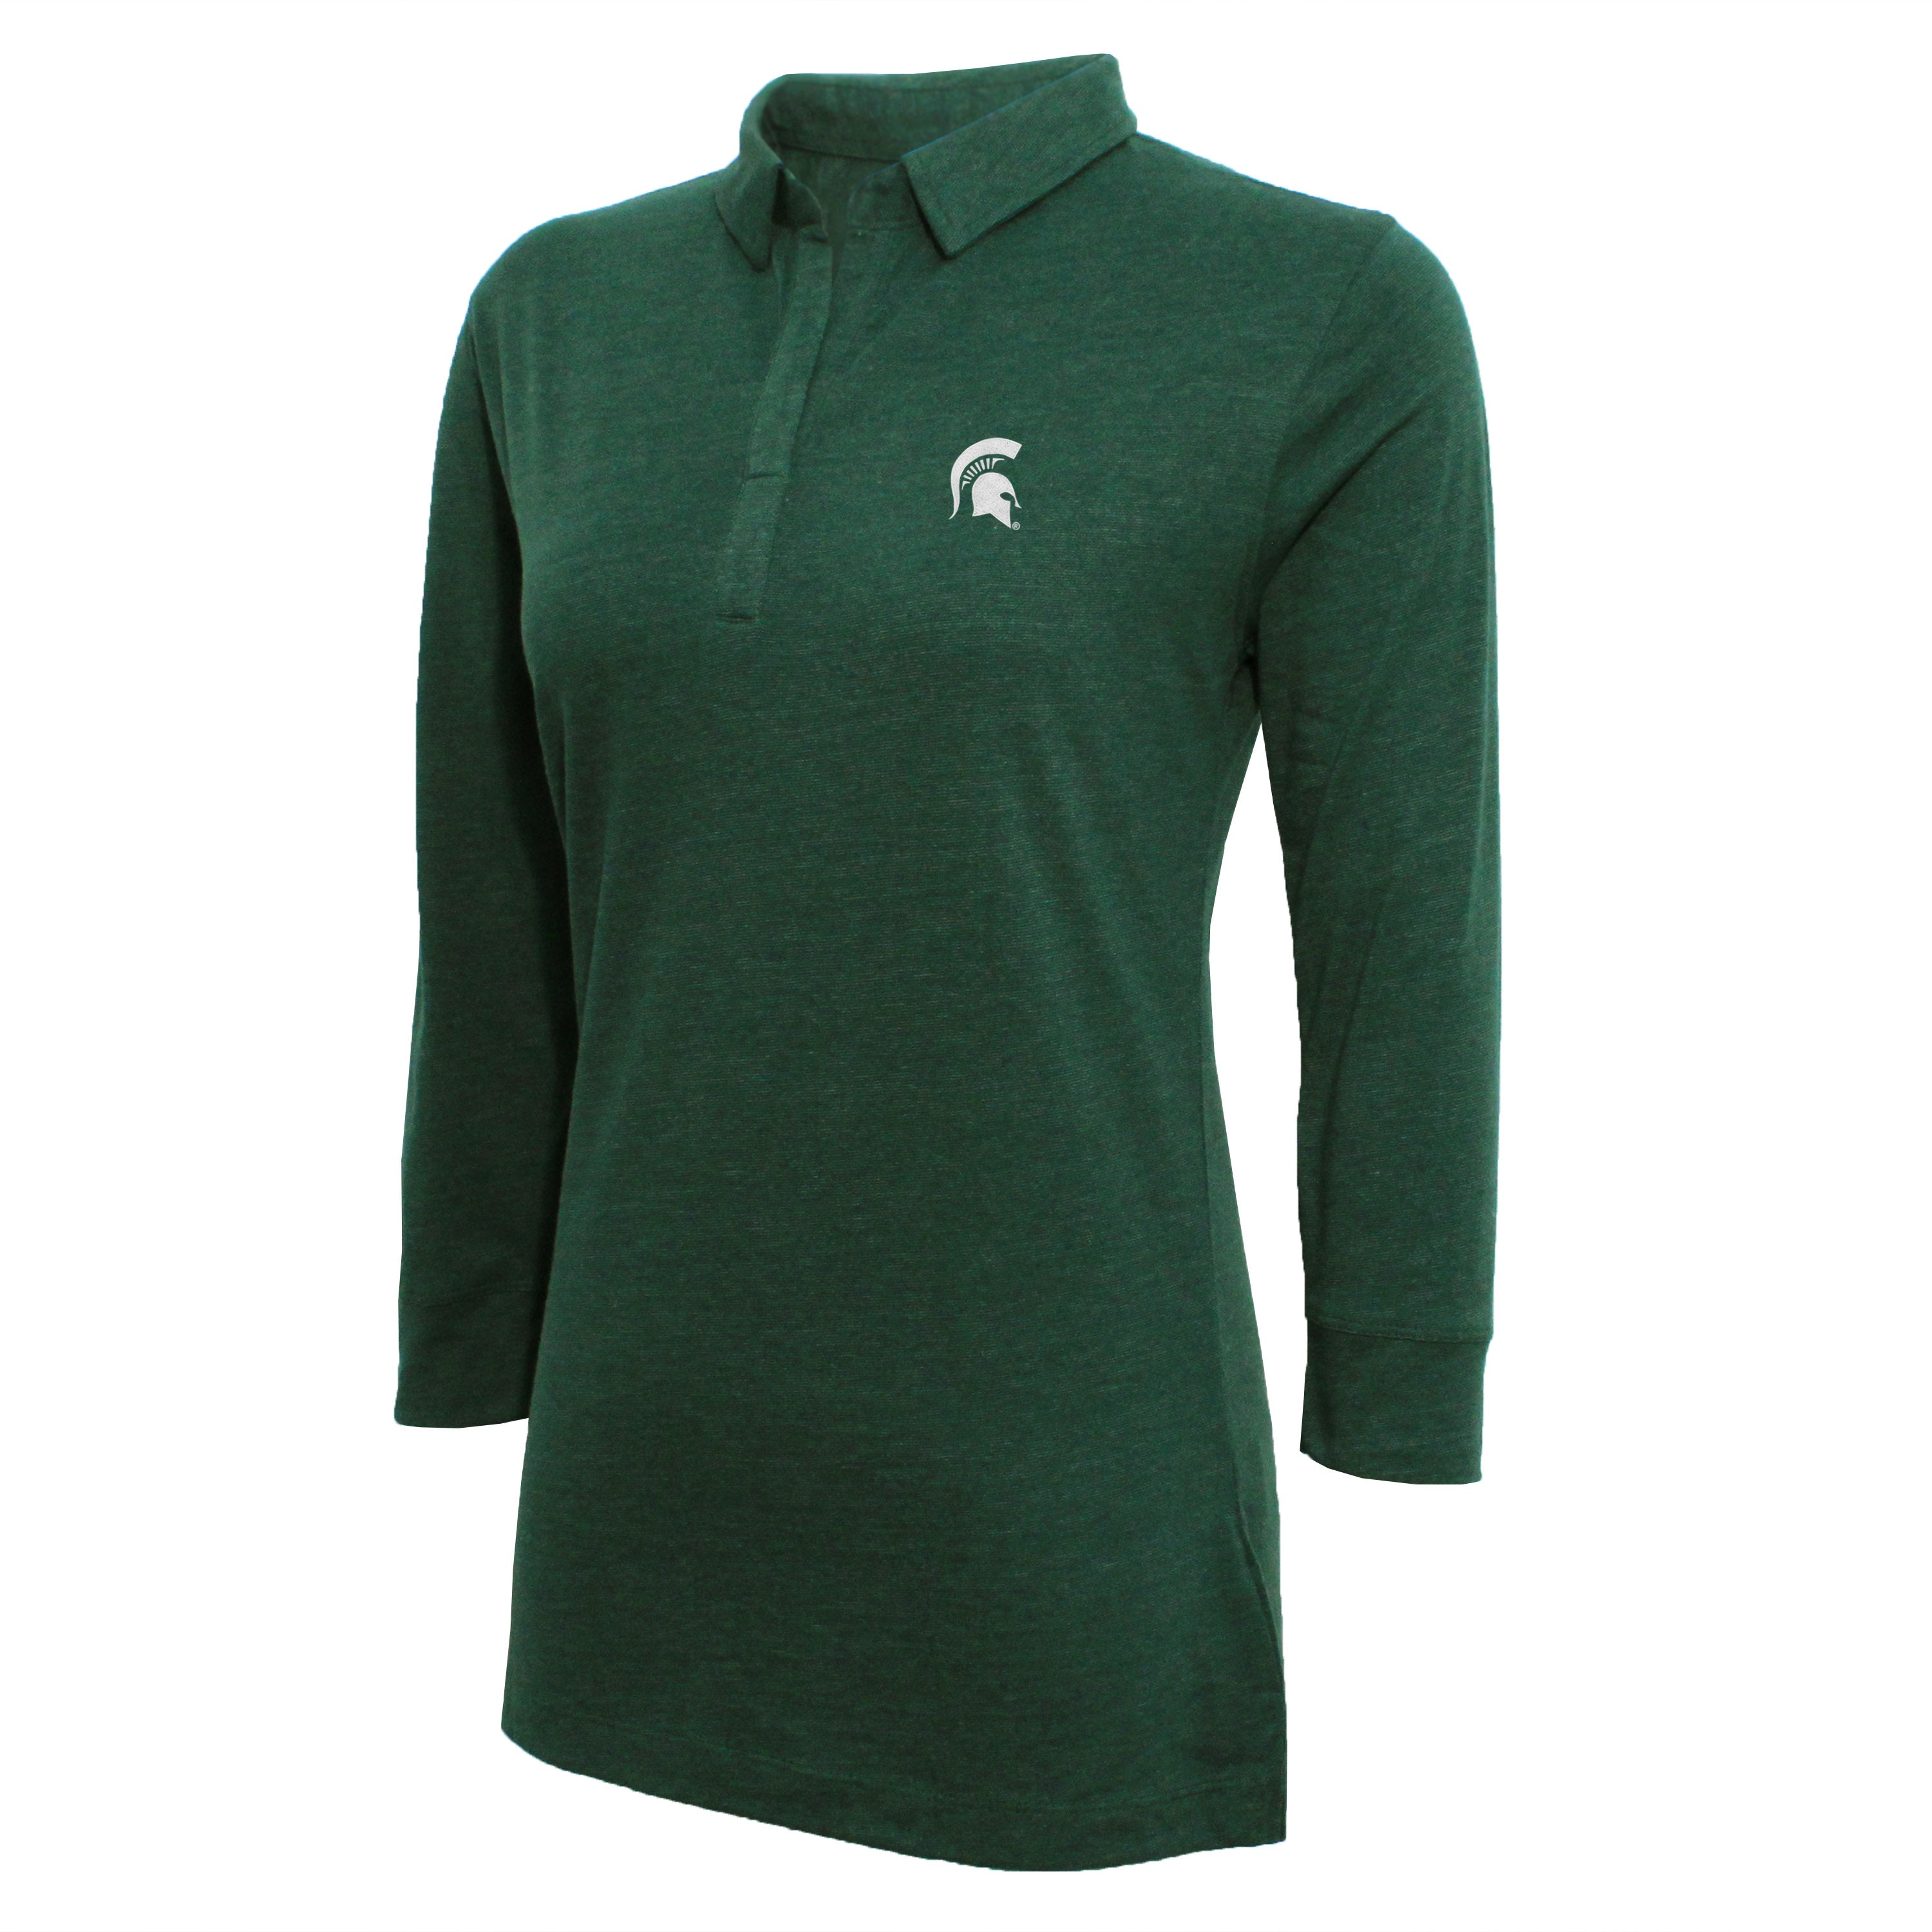 Campus Specialties Michigan State Women's Green Three Quarter Sleeve Polo